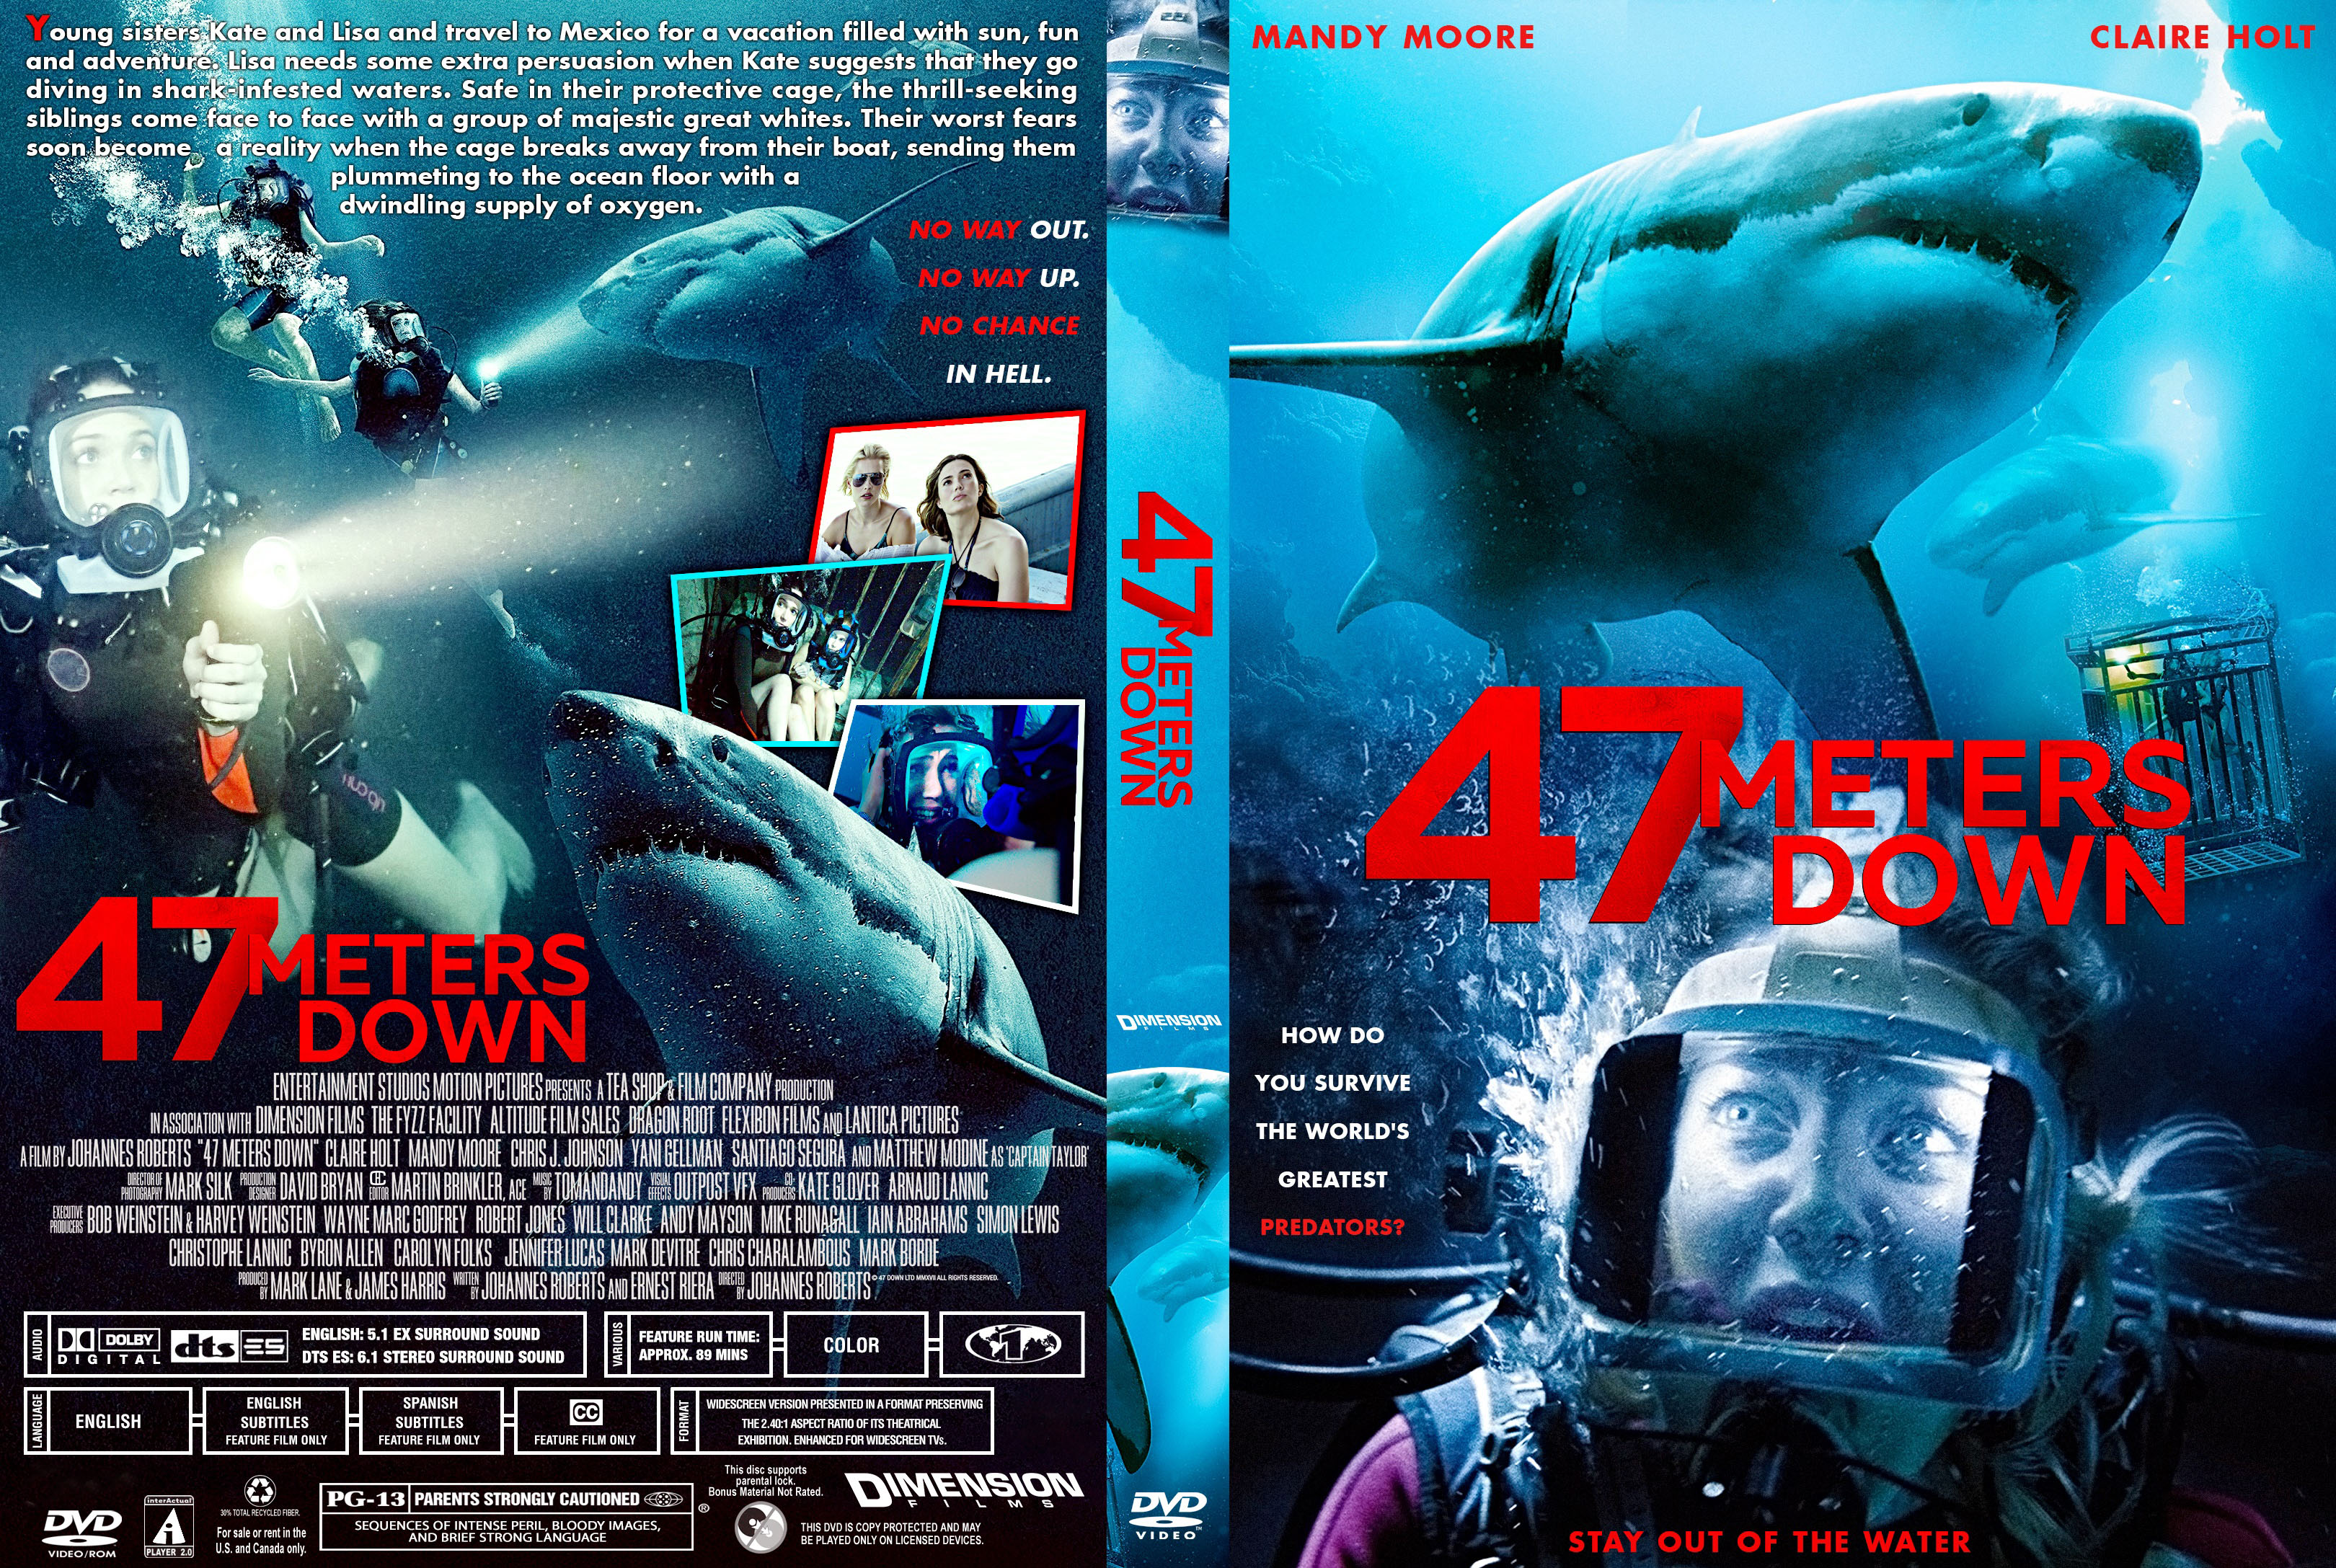 47 Meters Down DVD Cover | Cover Addict - Free DVD, Bluray ...